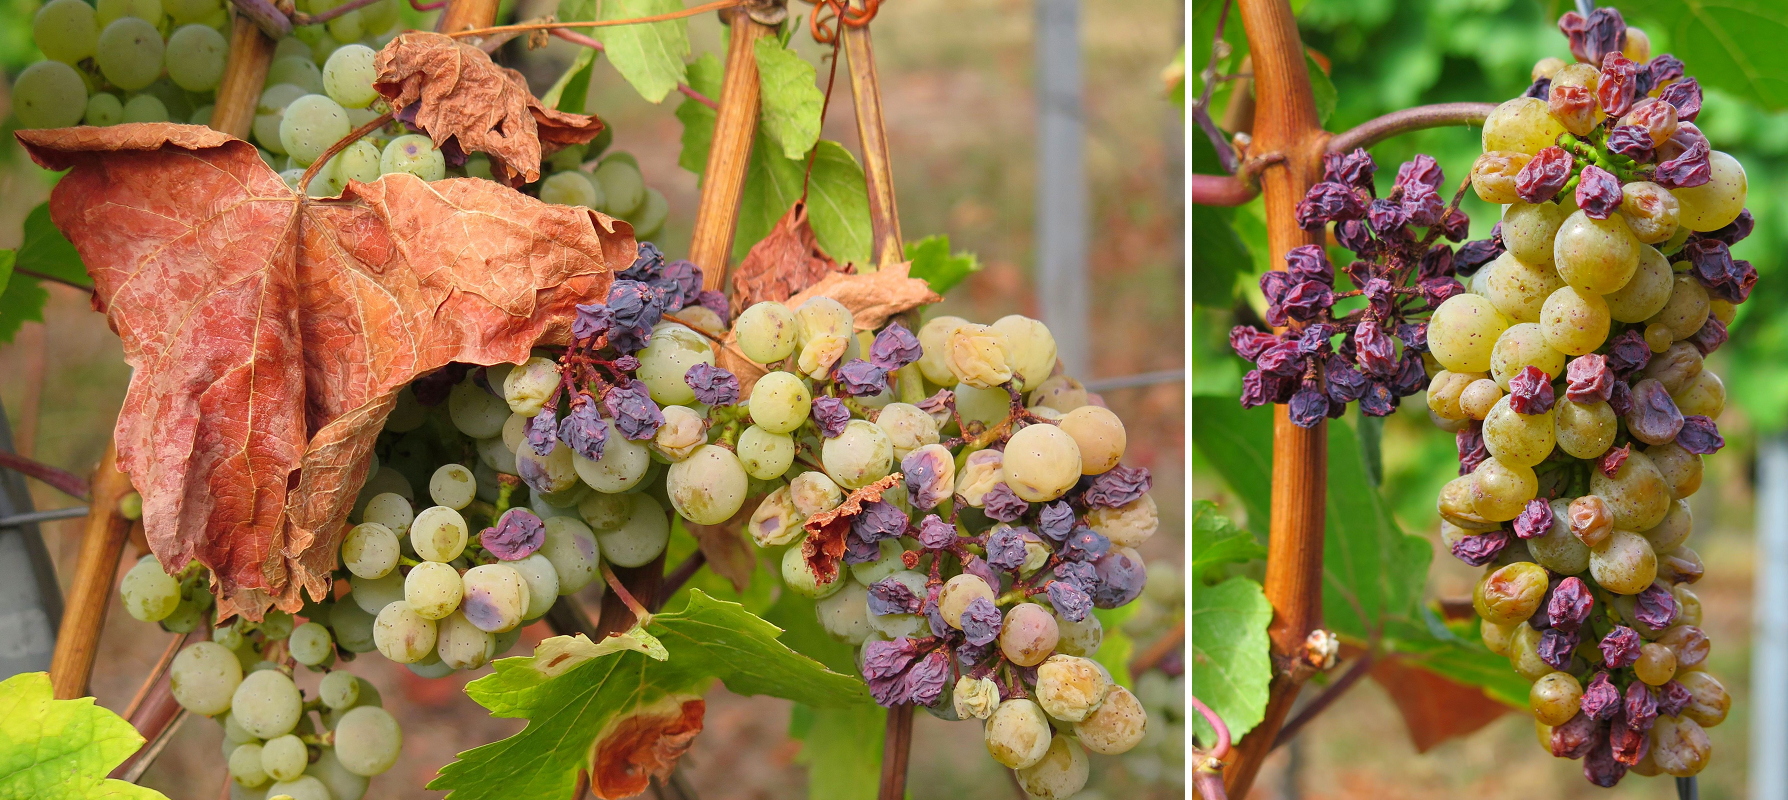 Drought / Dryness - Grapes and leaves